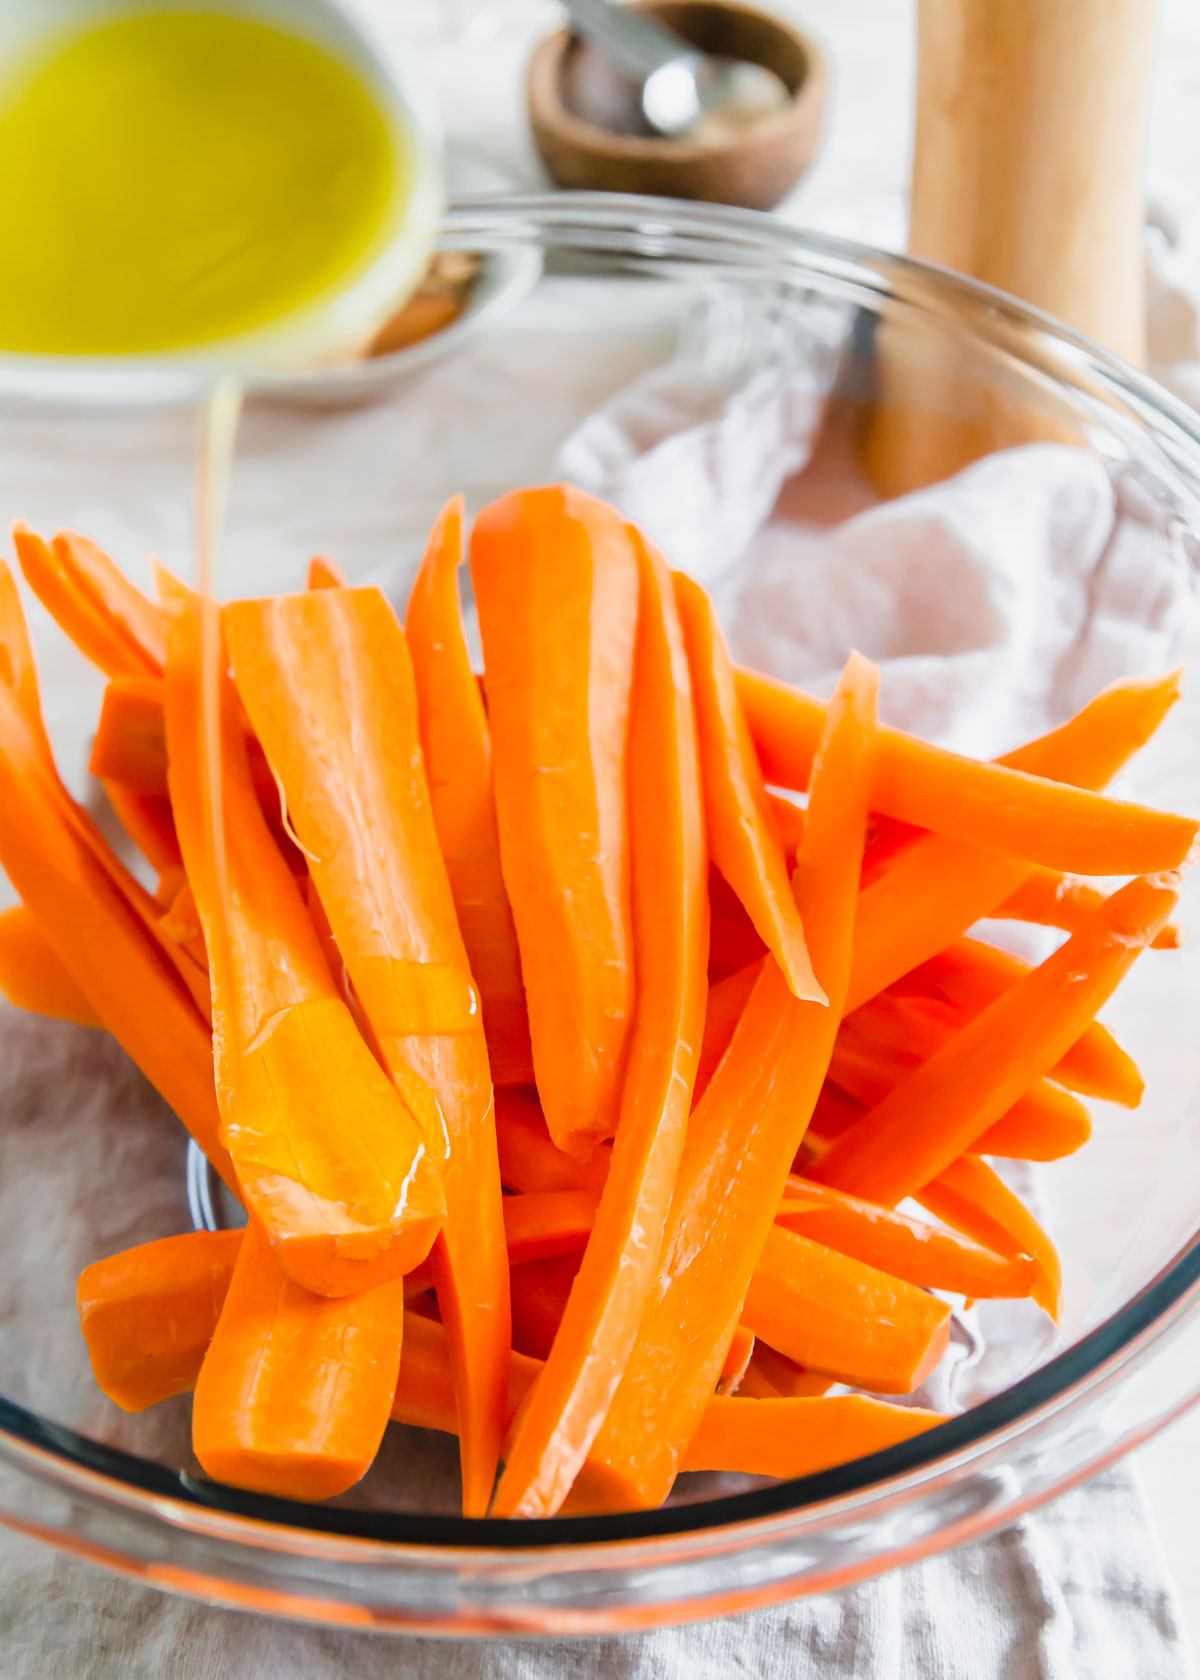 Turn carrots into a delicious spiced side dish in your air fryer with this simple recipe.